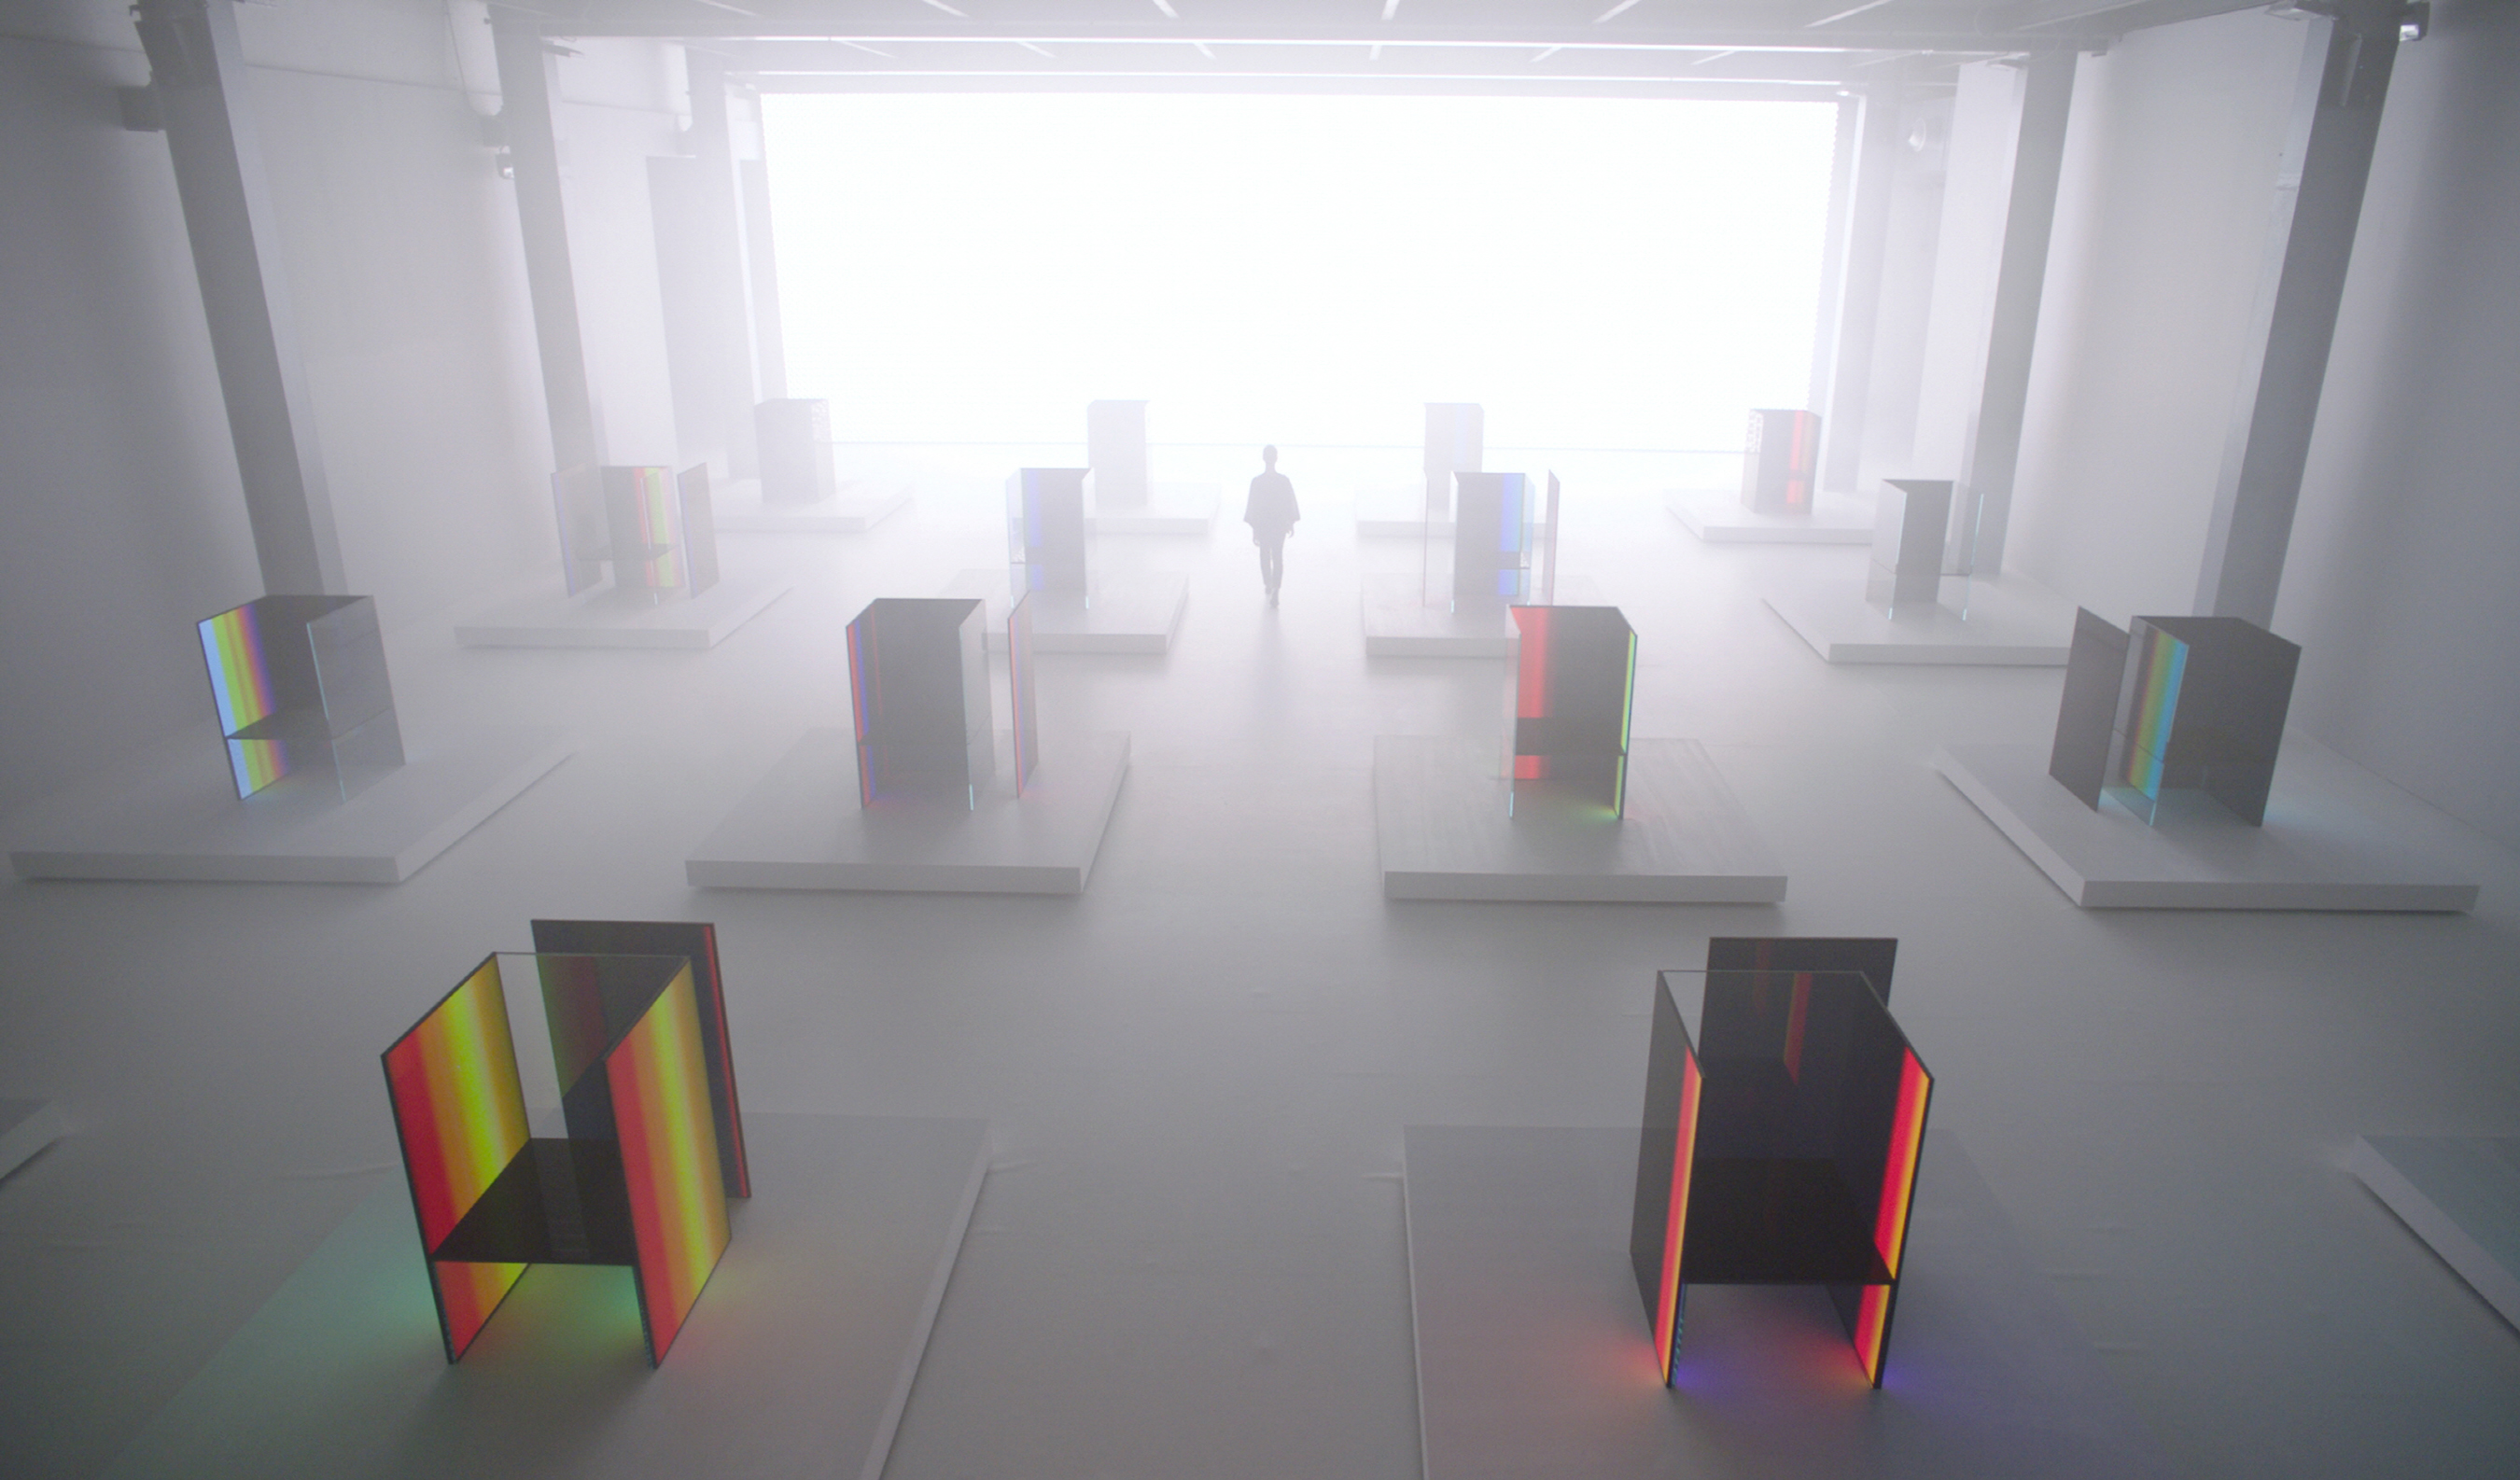 LG's pioneering OLED technology has been woven into Tokujin Yoshioka's poetic designs to create futuristic artwork